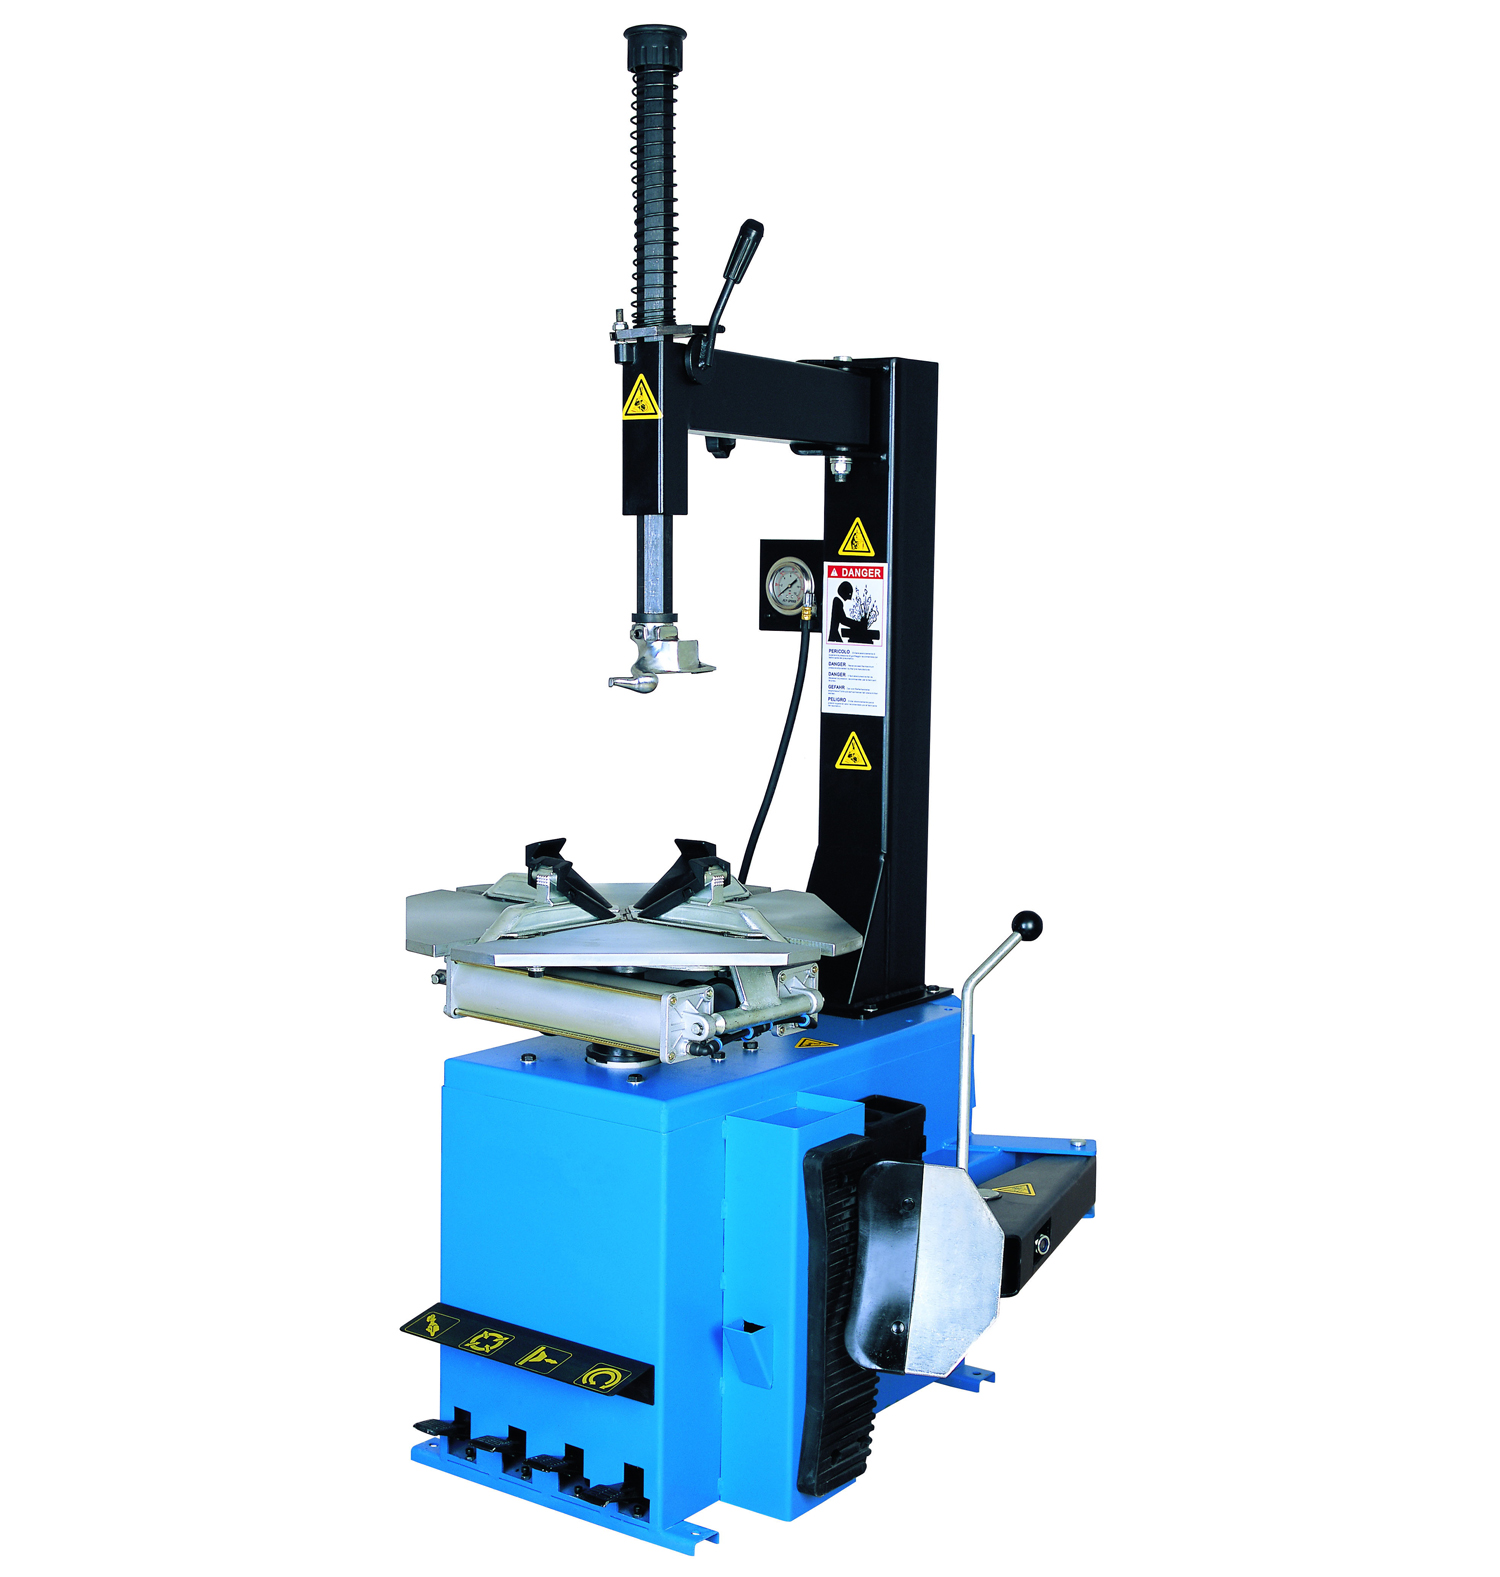 RP-2105 Tire changer